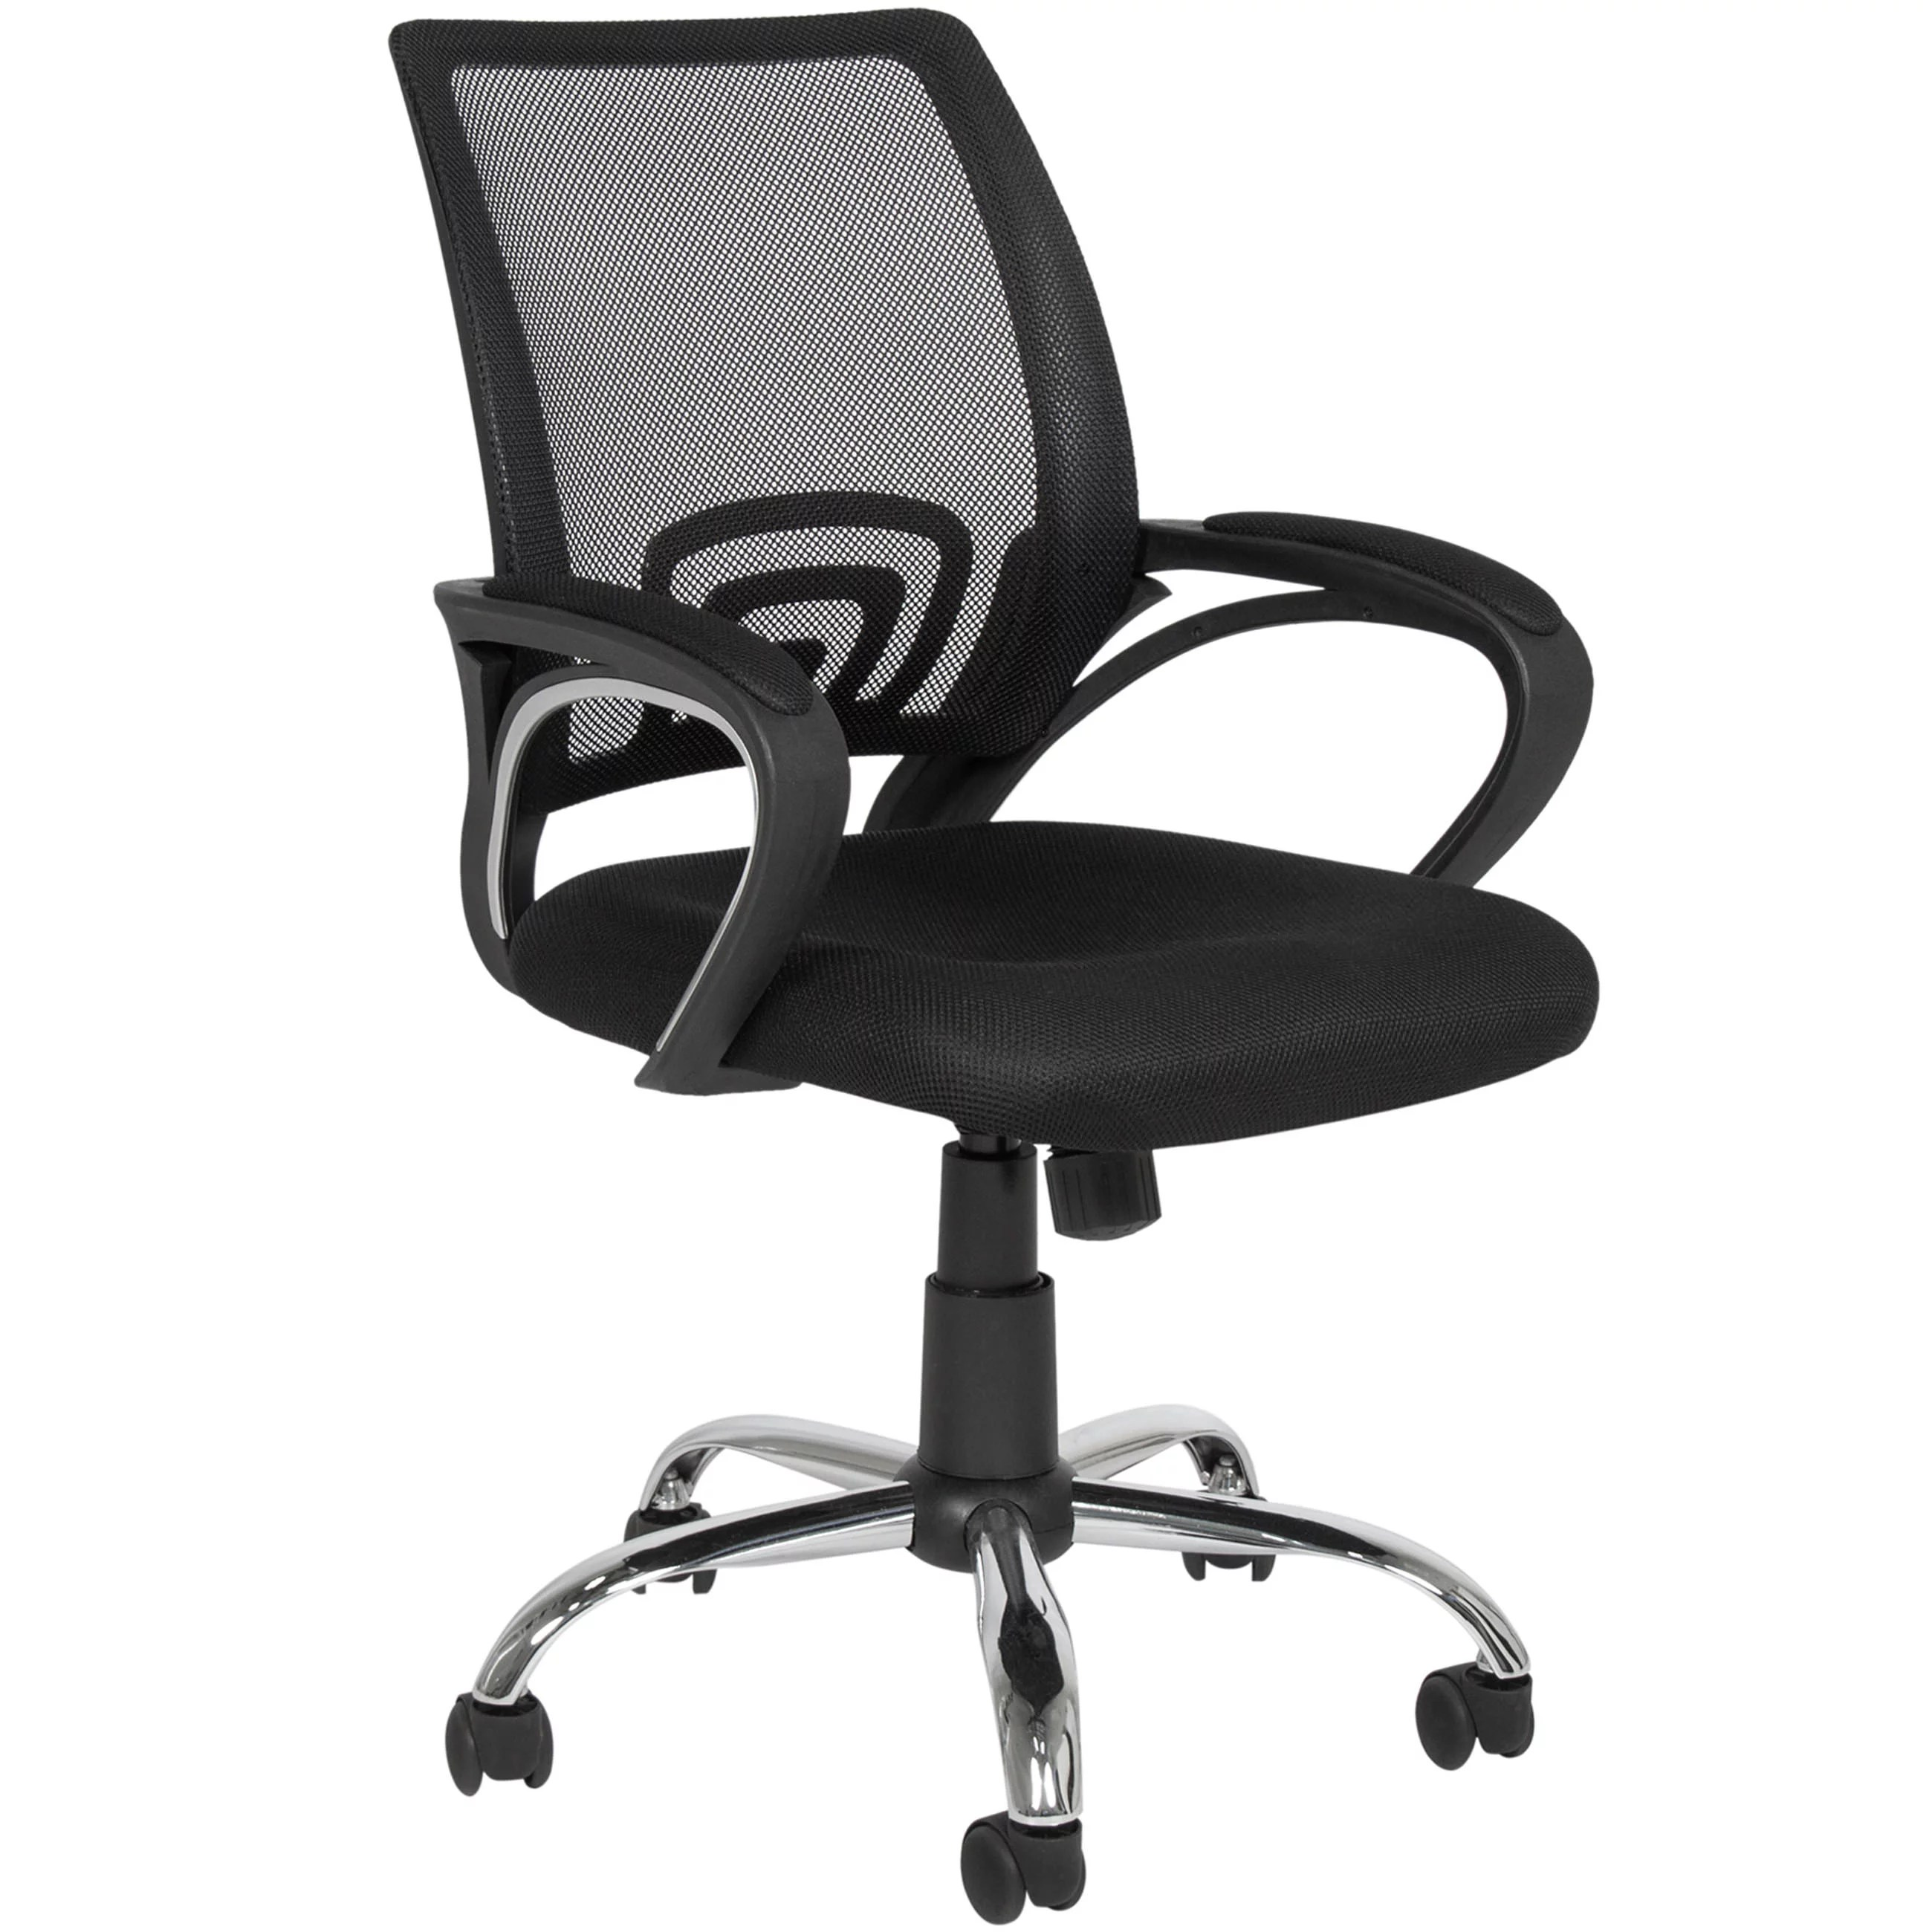 Ergonomic Chair Best Choice Products Ergonomic Mesh Computer Office Desk Task Midback Task Chair W Metal Base New